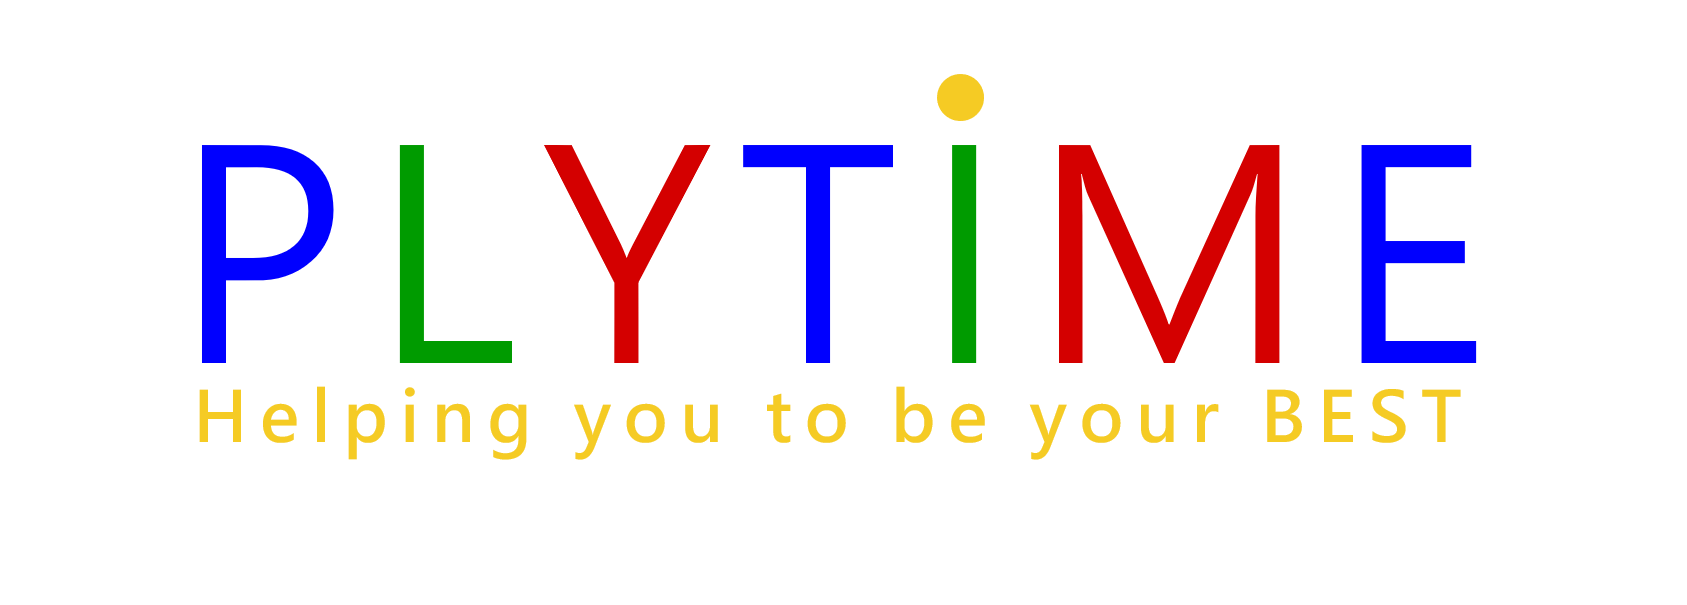 PLYTIME - Helping you to be your BEST